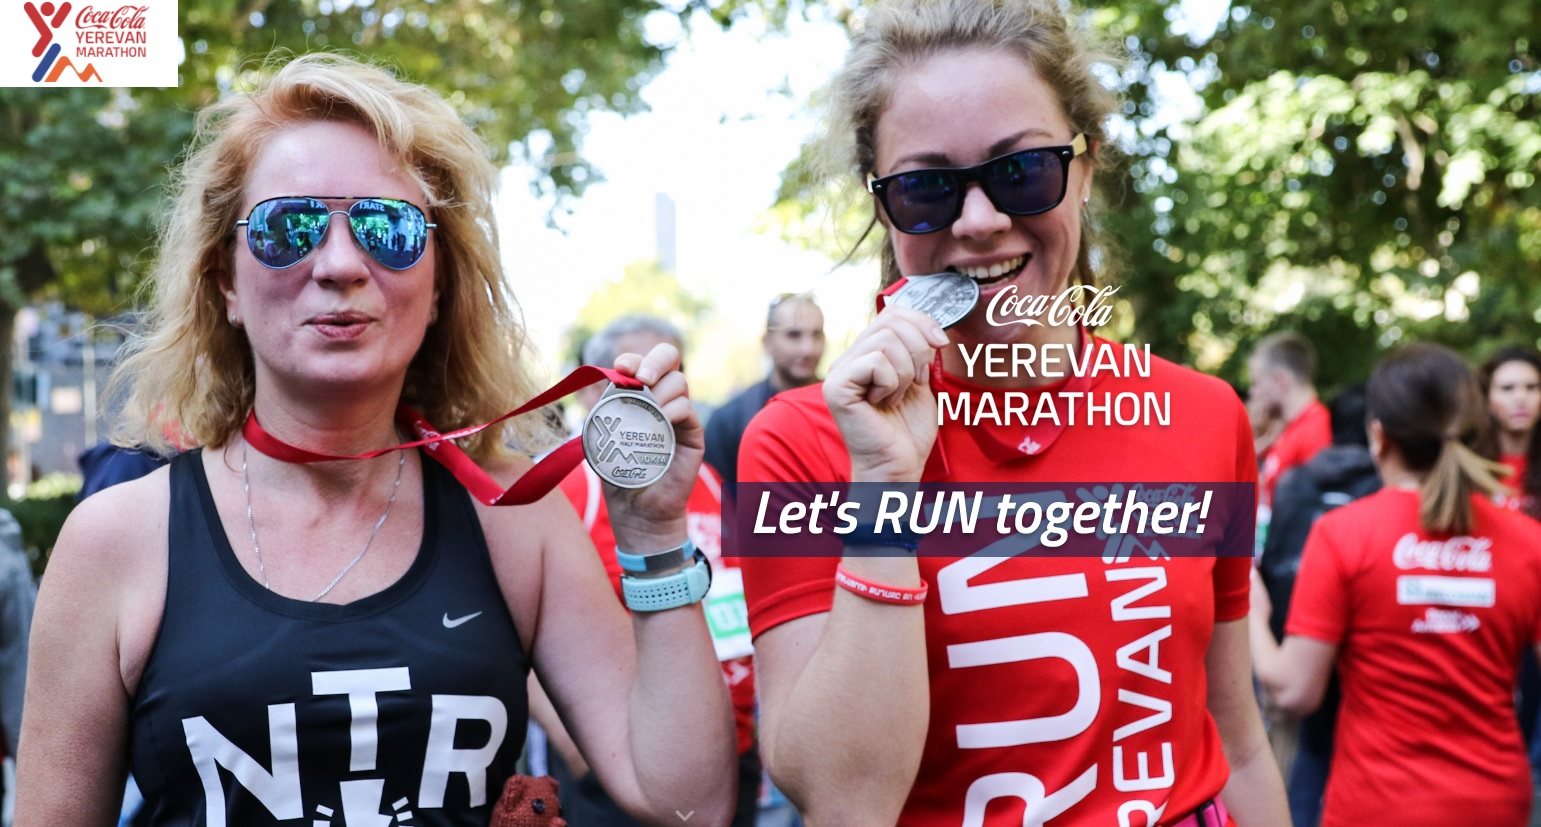 The Coca-Cola Yerevan Marathon 2018 - Race Connections